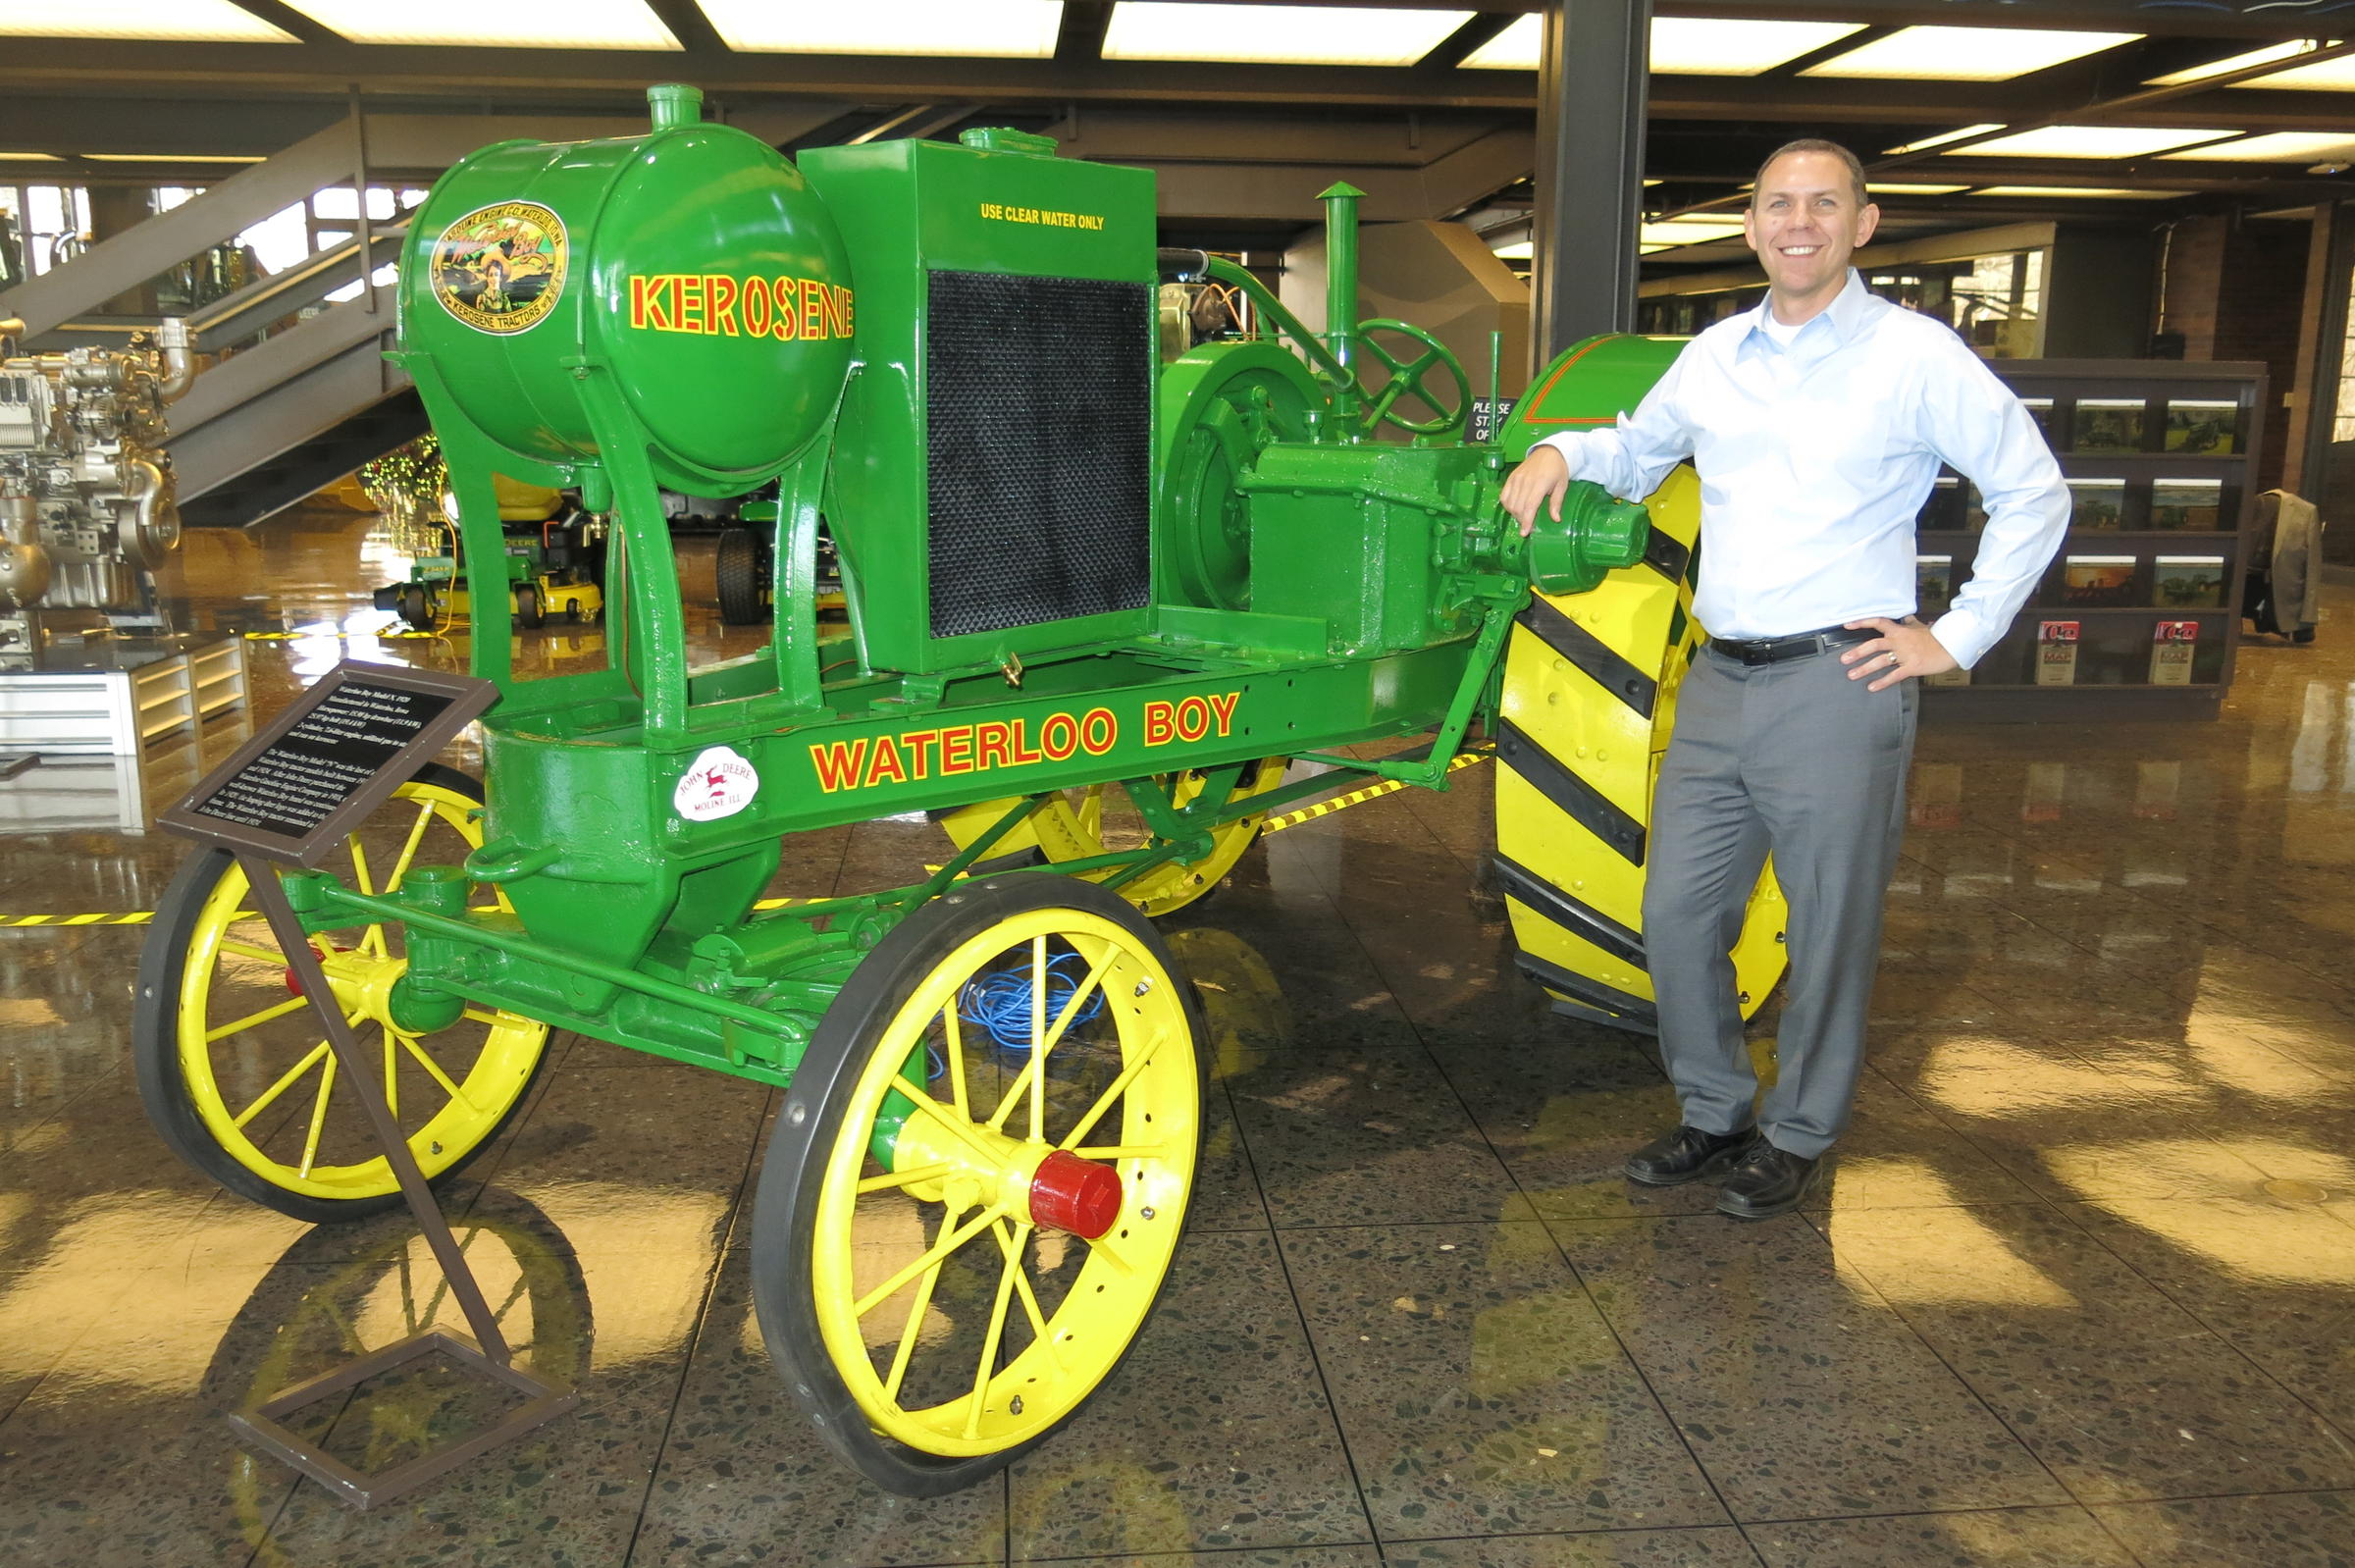 Neil Dahlstrom with a restored Waterloo Boy tractor at John Deere World Headquarters. MICHELLE O'NEILL / WVIK NEWS